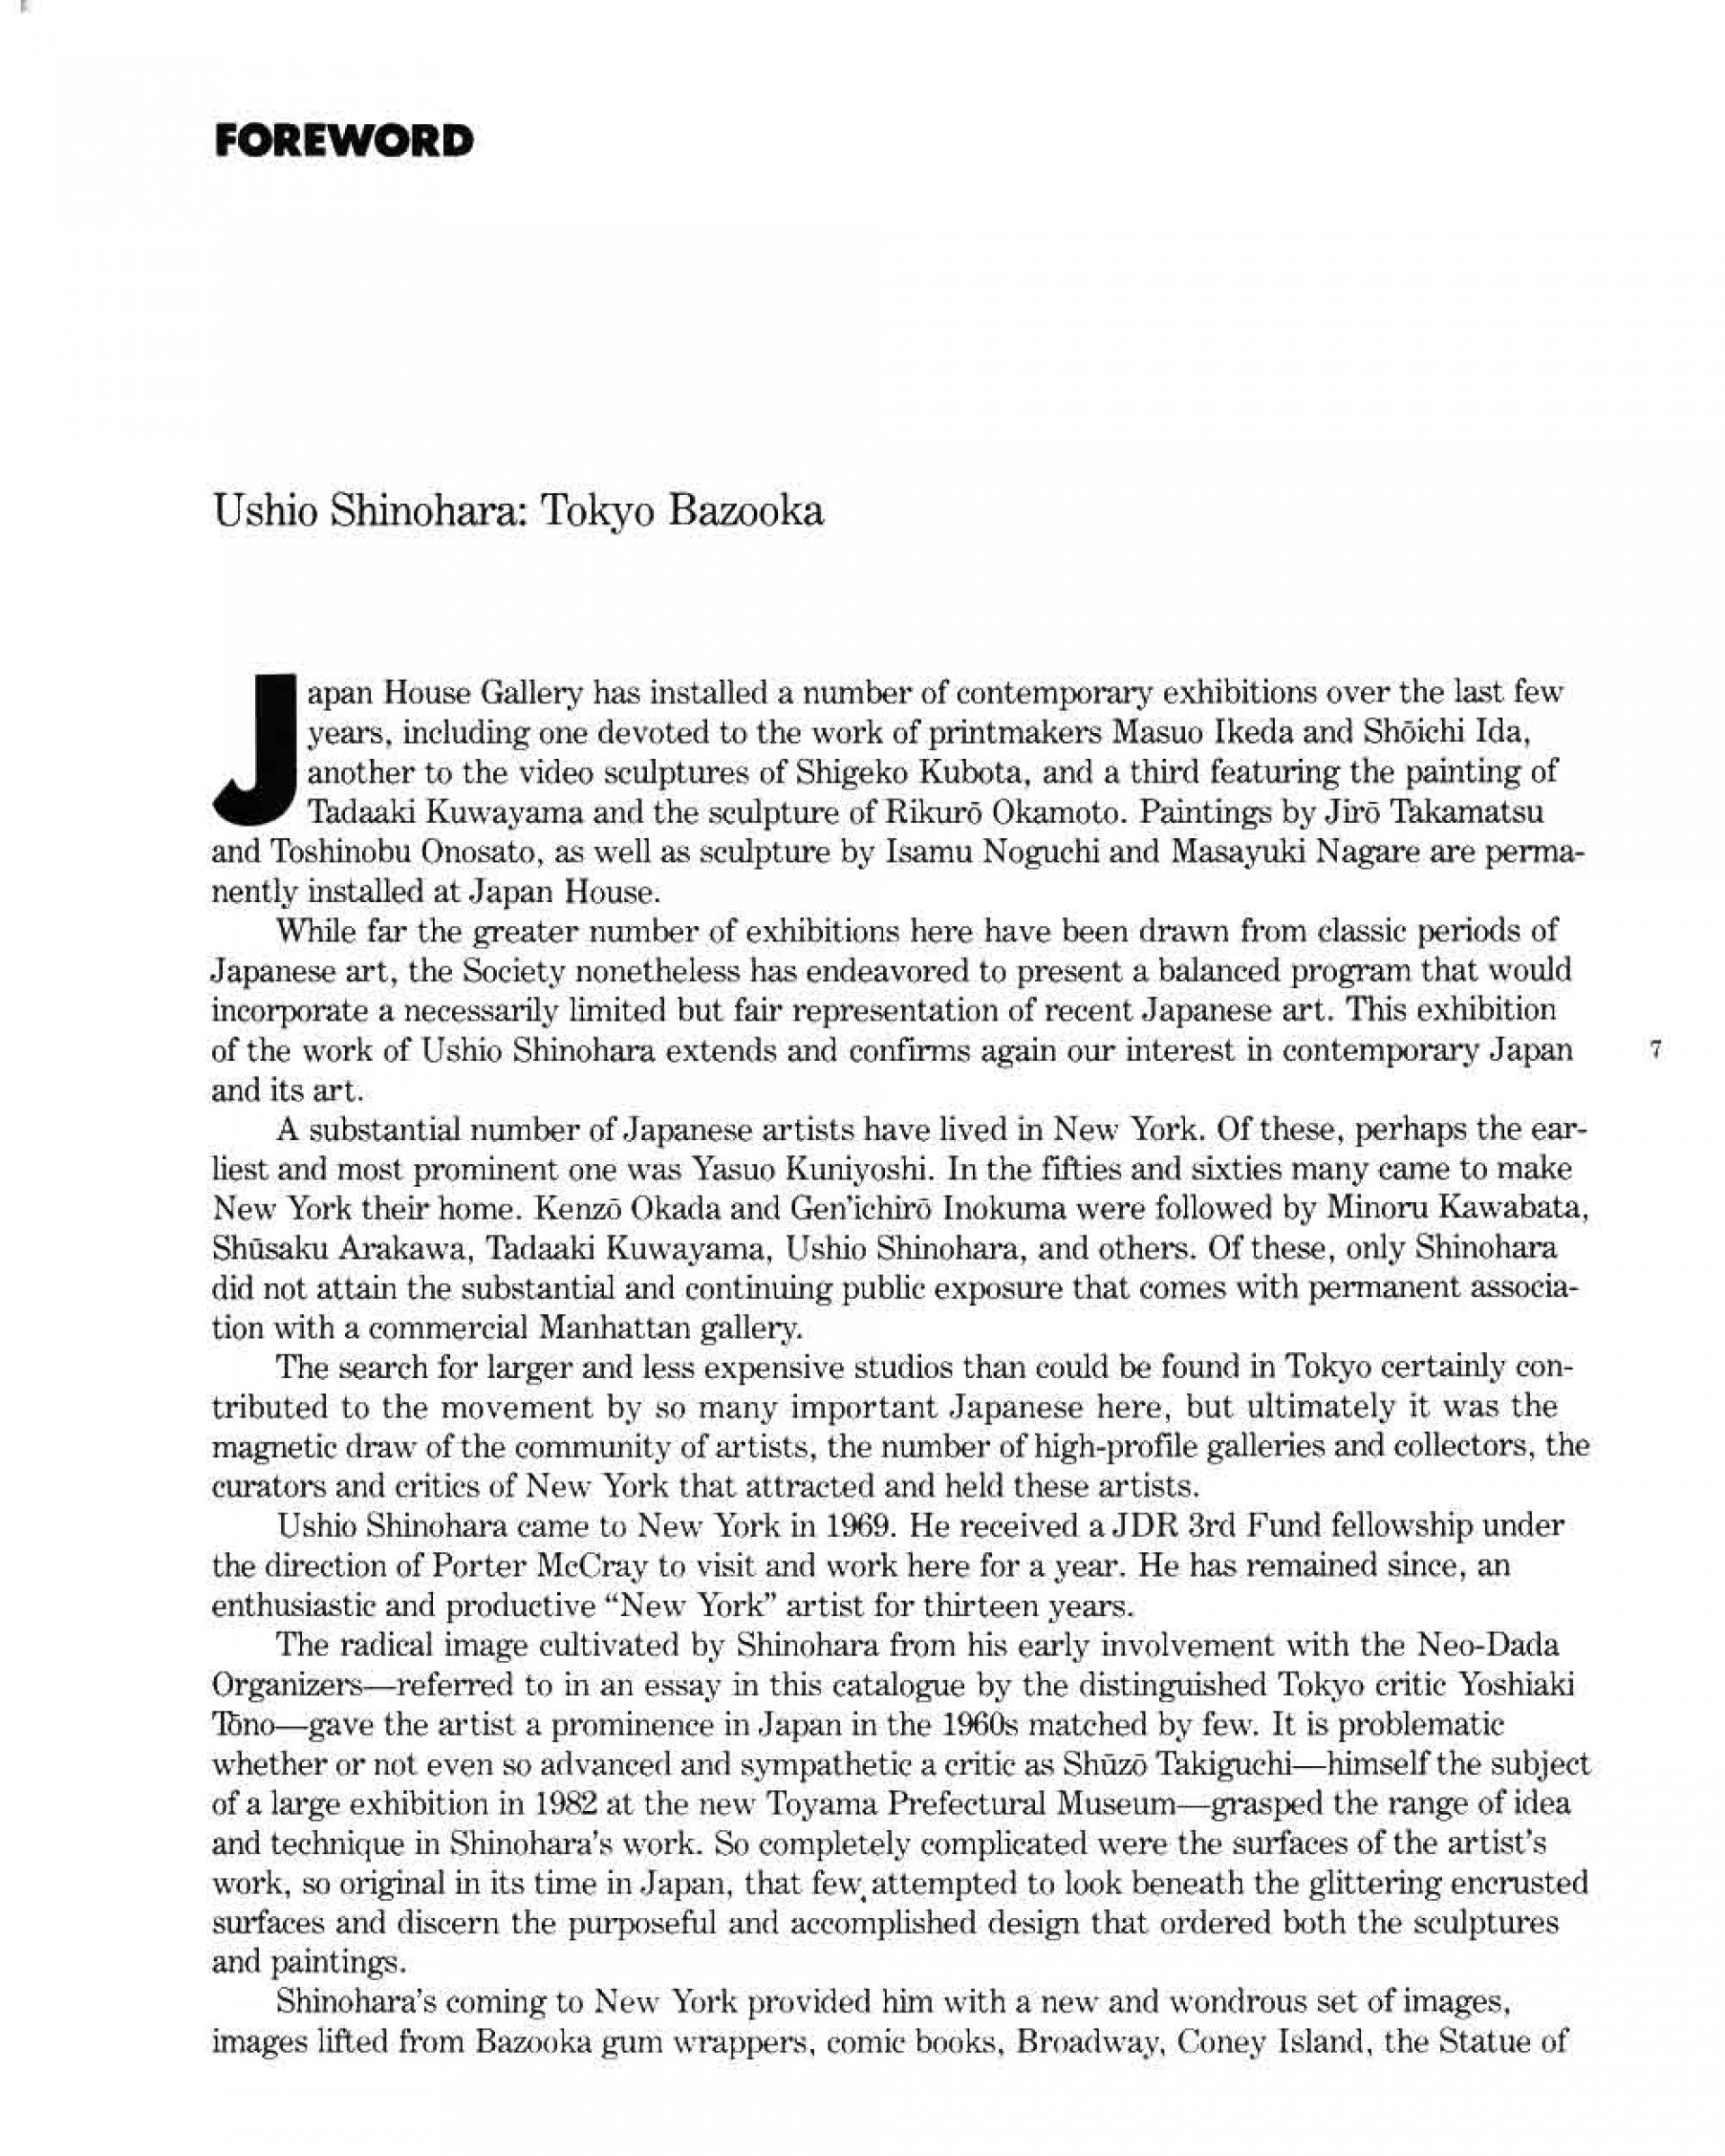 009 Ushio Shinohara Tokyo Bazooka Essay Pg 1 Example How To Quote An Article Impressive In Reference Apa Title Online 1920